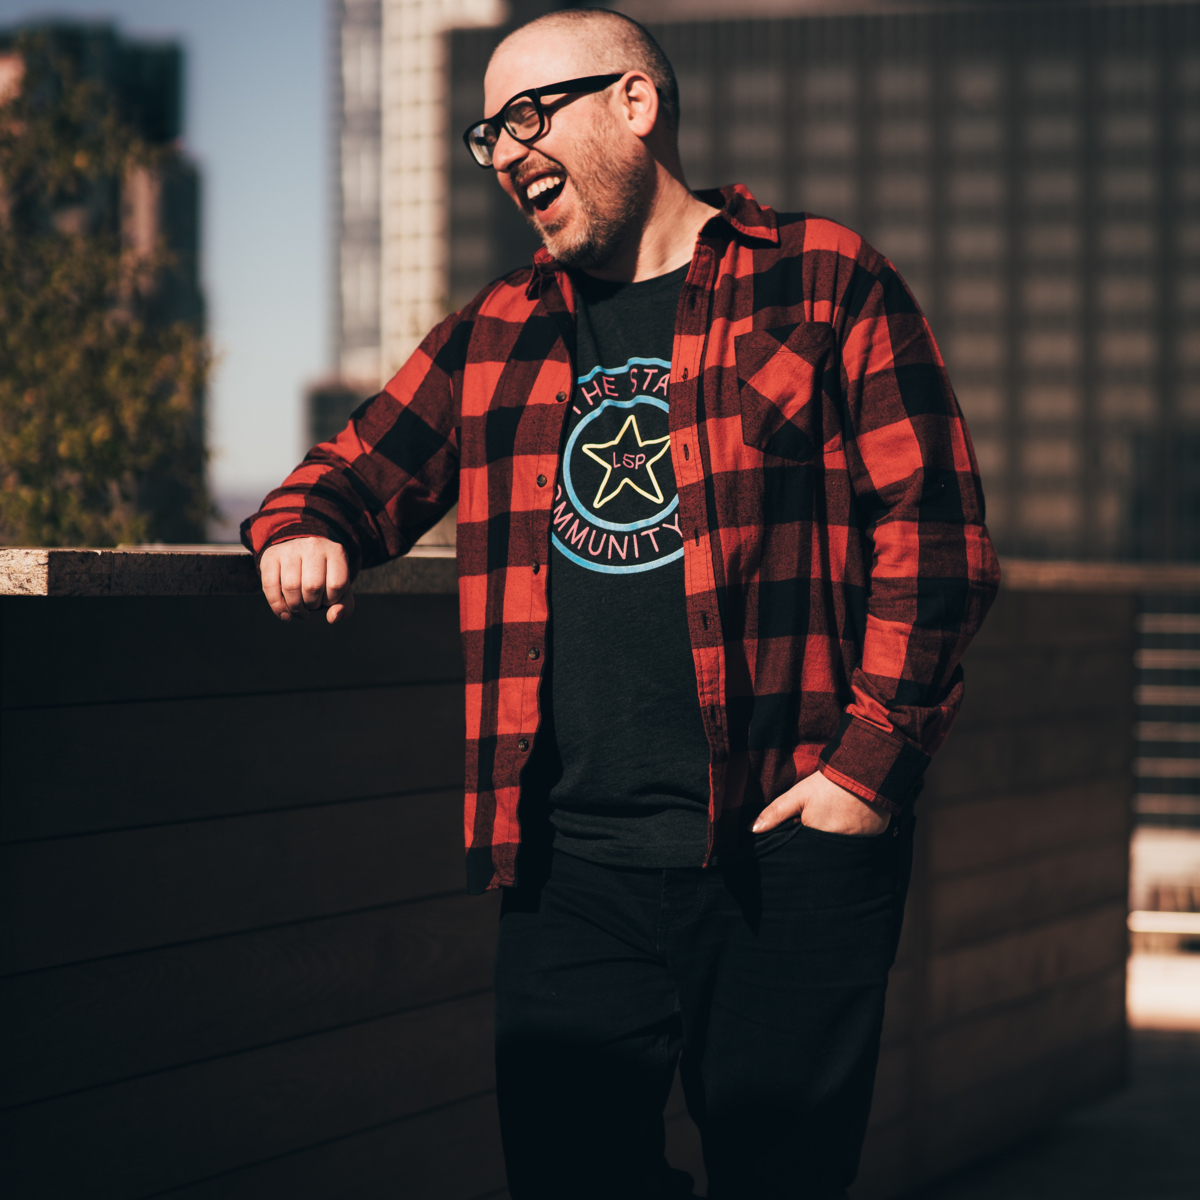 Justin Morgan leaning on a wall, laughing, and wearing red plaid